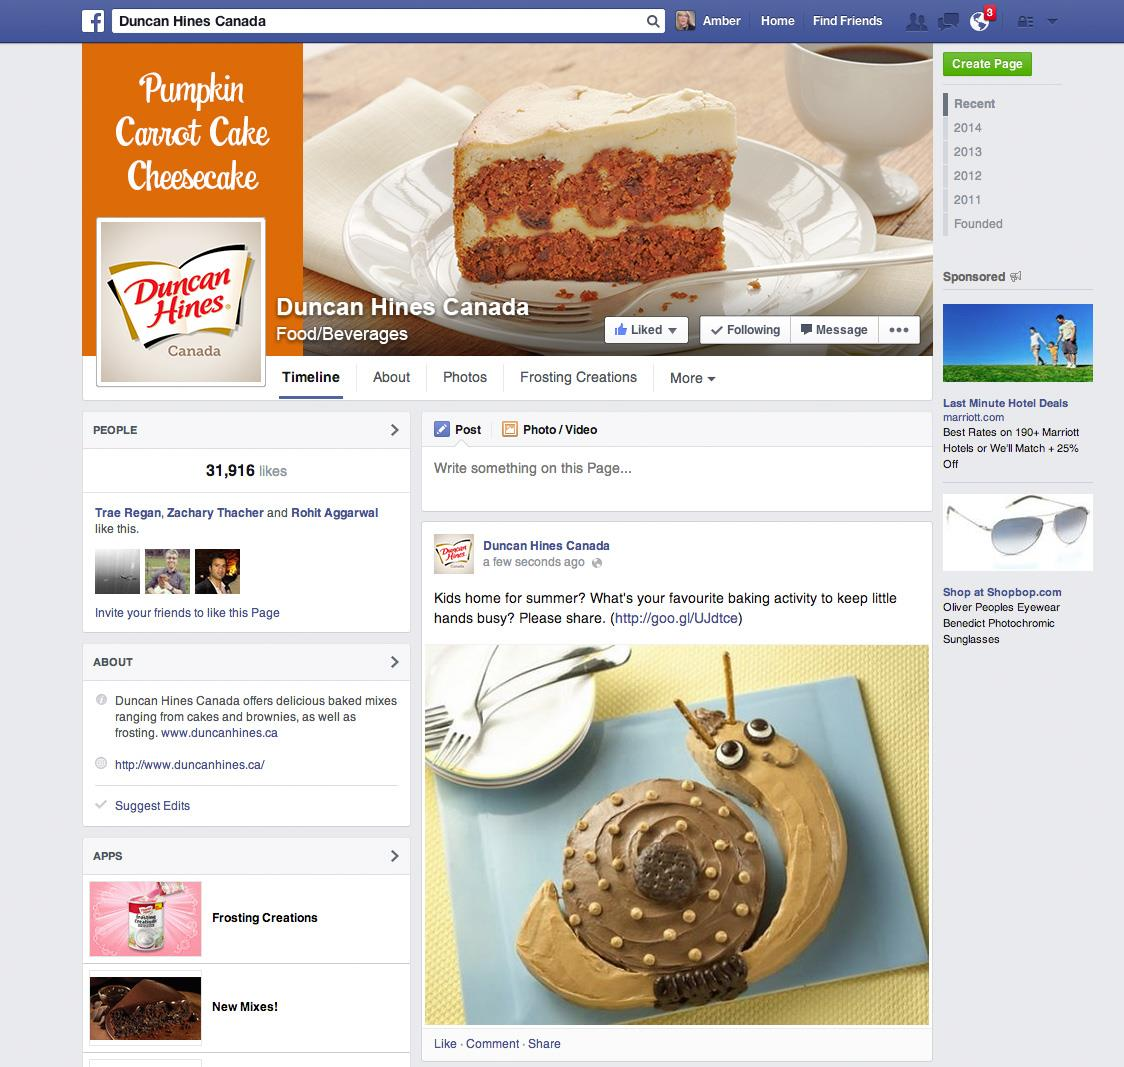 Facebook for Duncan Hines Canada